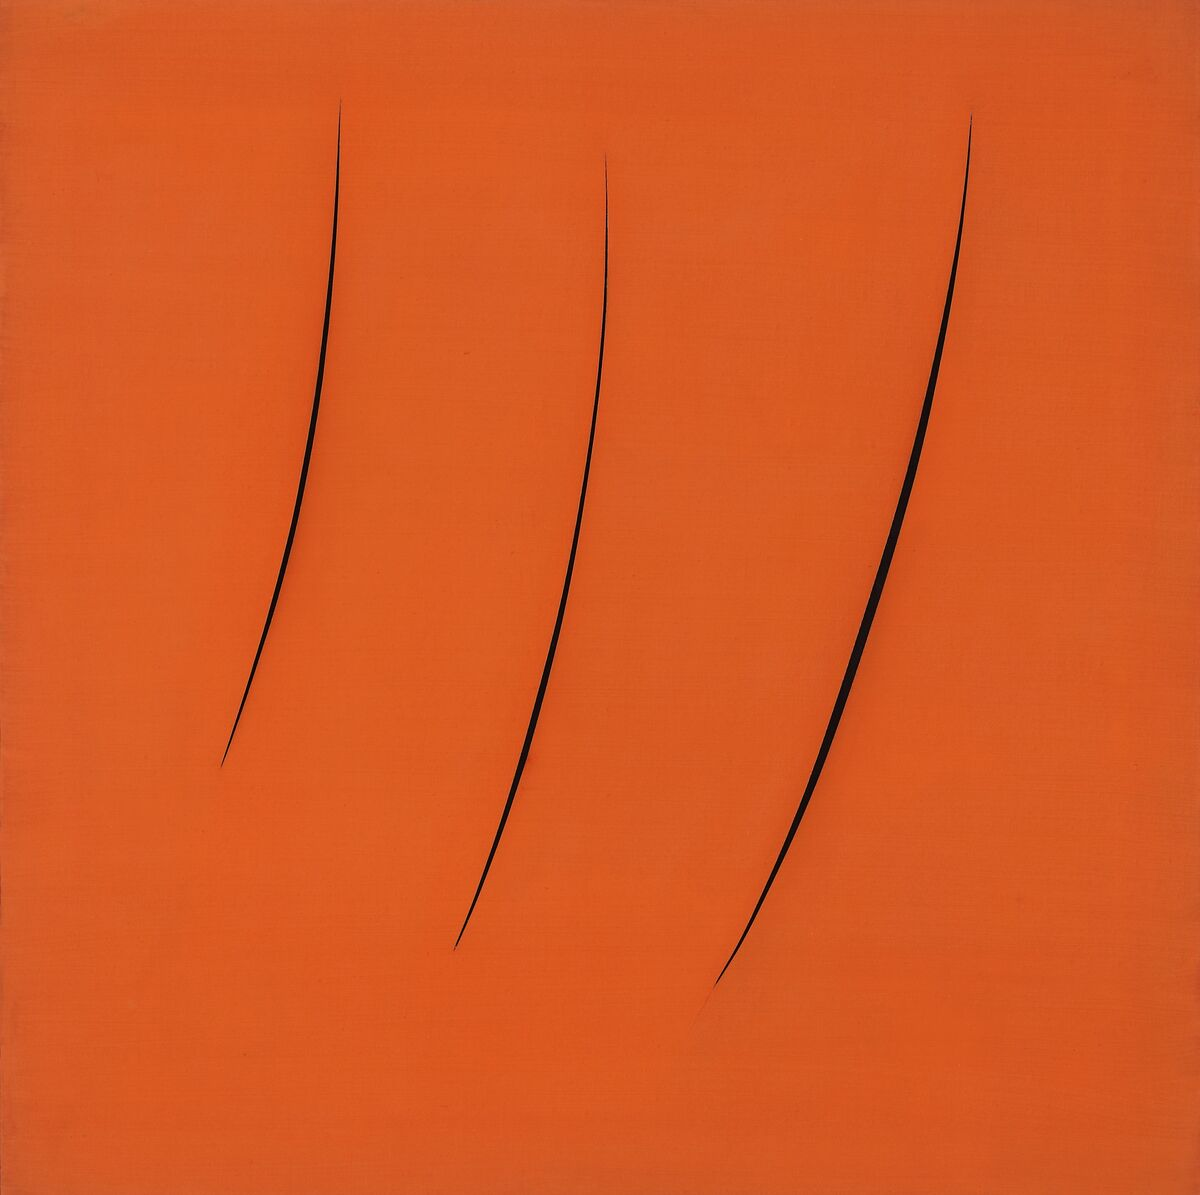 Lucio Fontana, Spatial Concept, Expectations, 1949. Courtesy of The Metropolitan Museum of Art